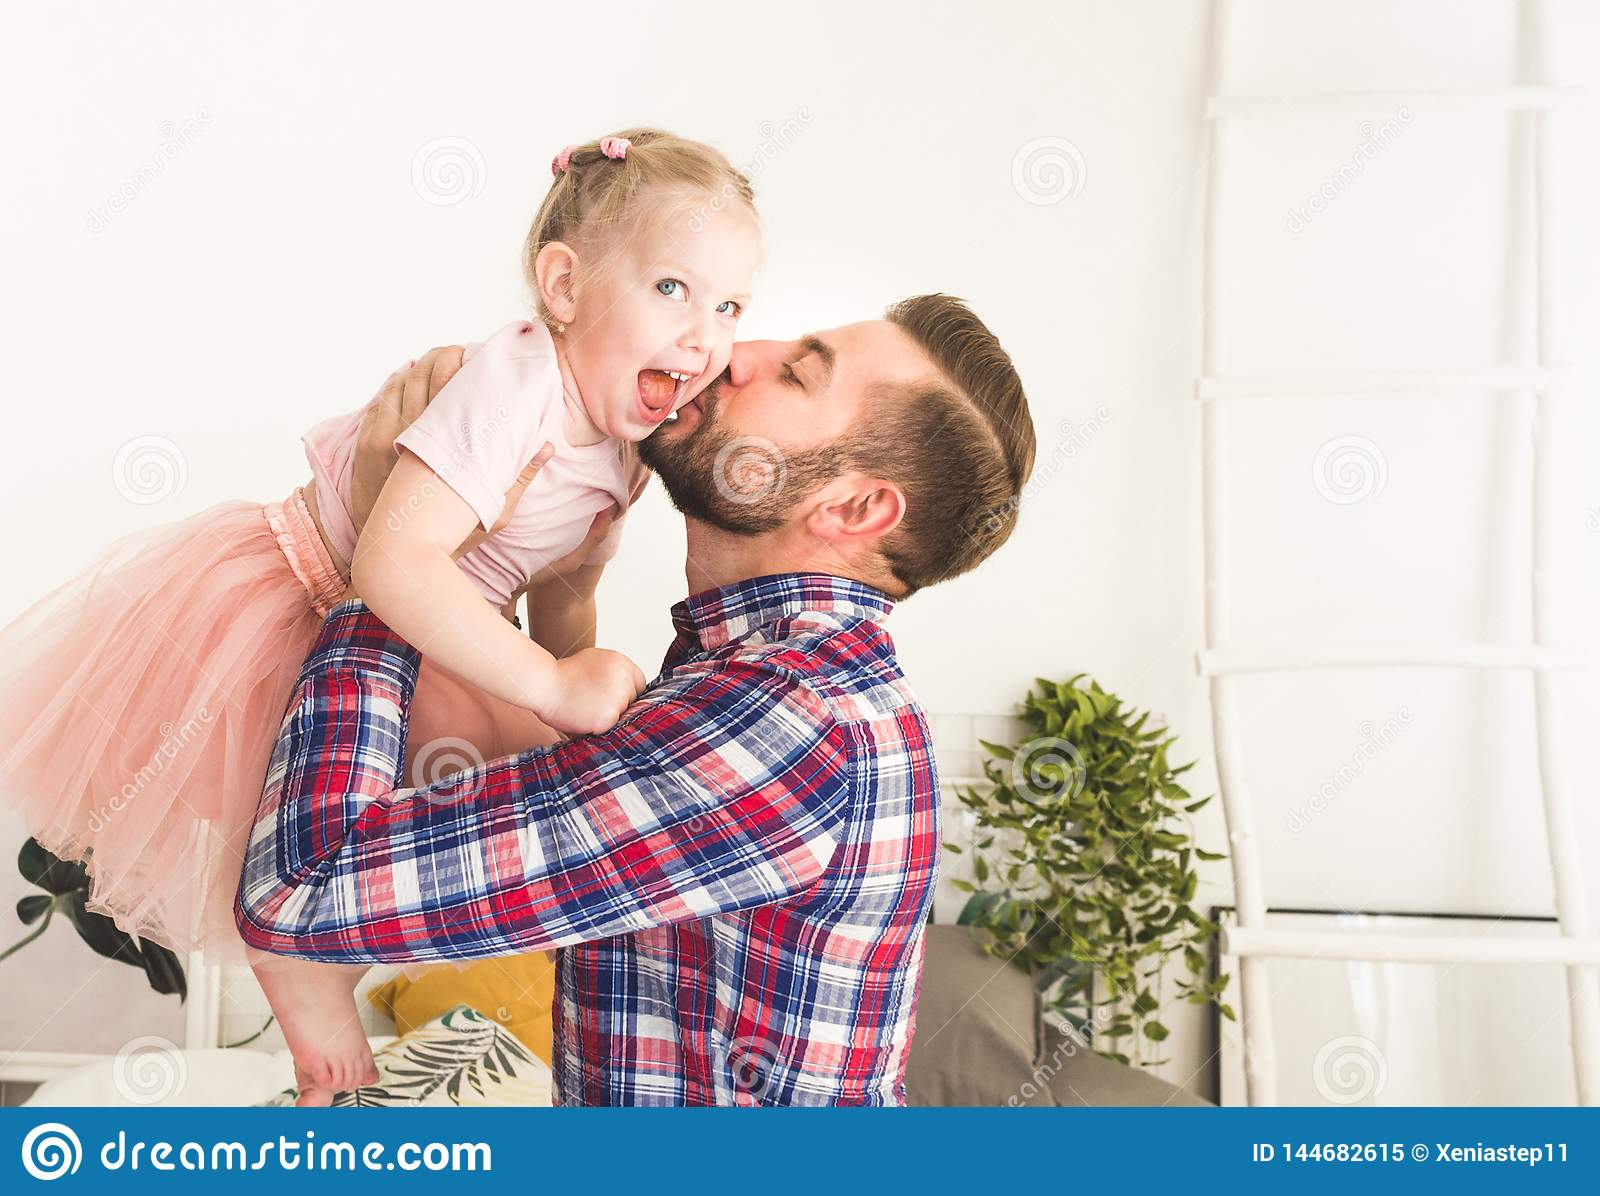 Cute little girl and her dad are having fun at home.